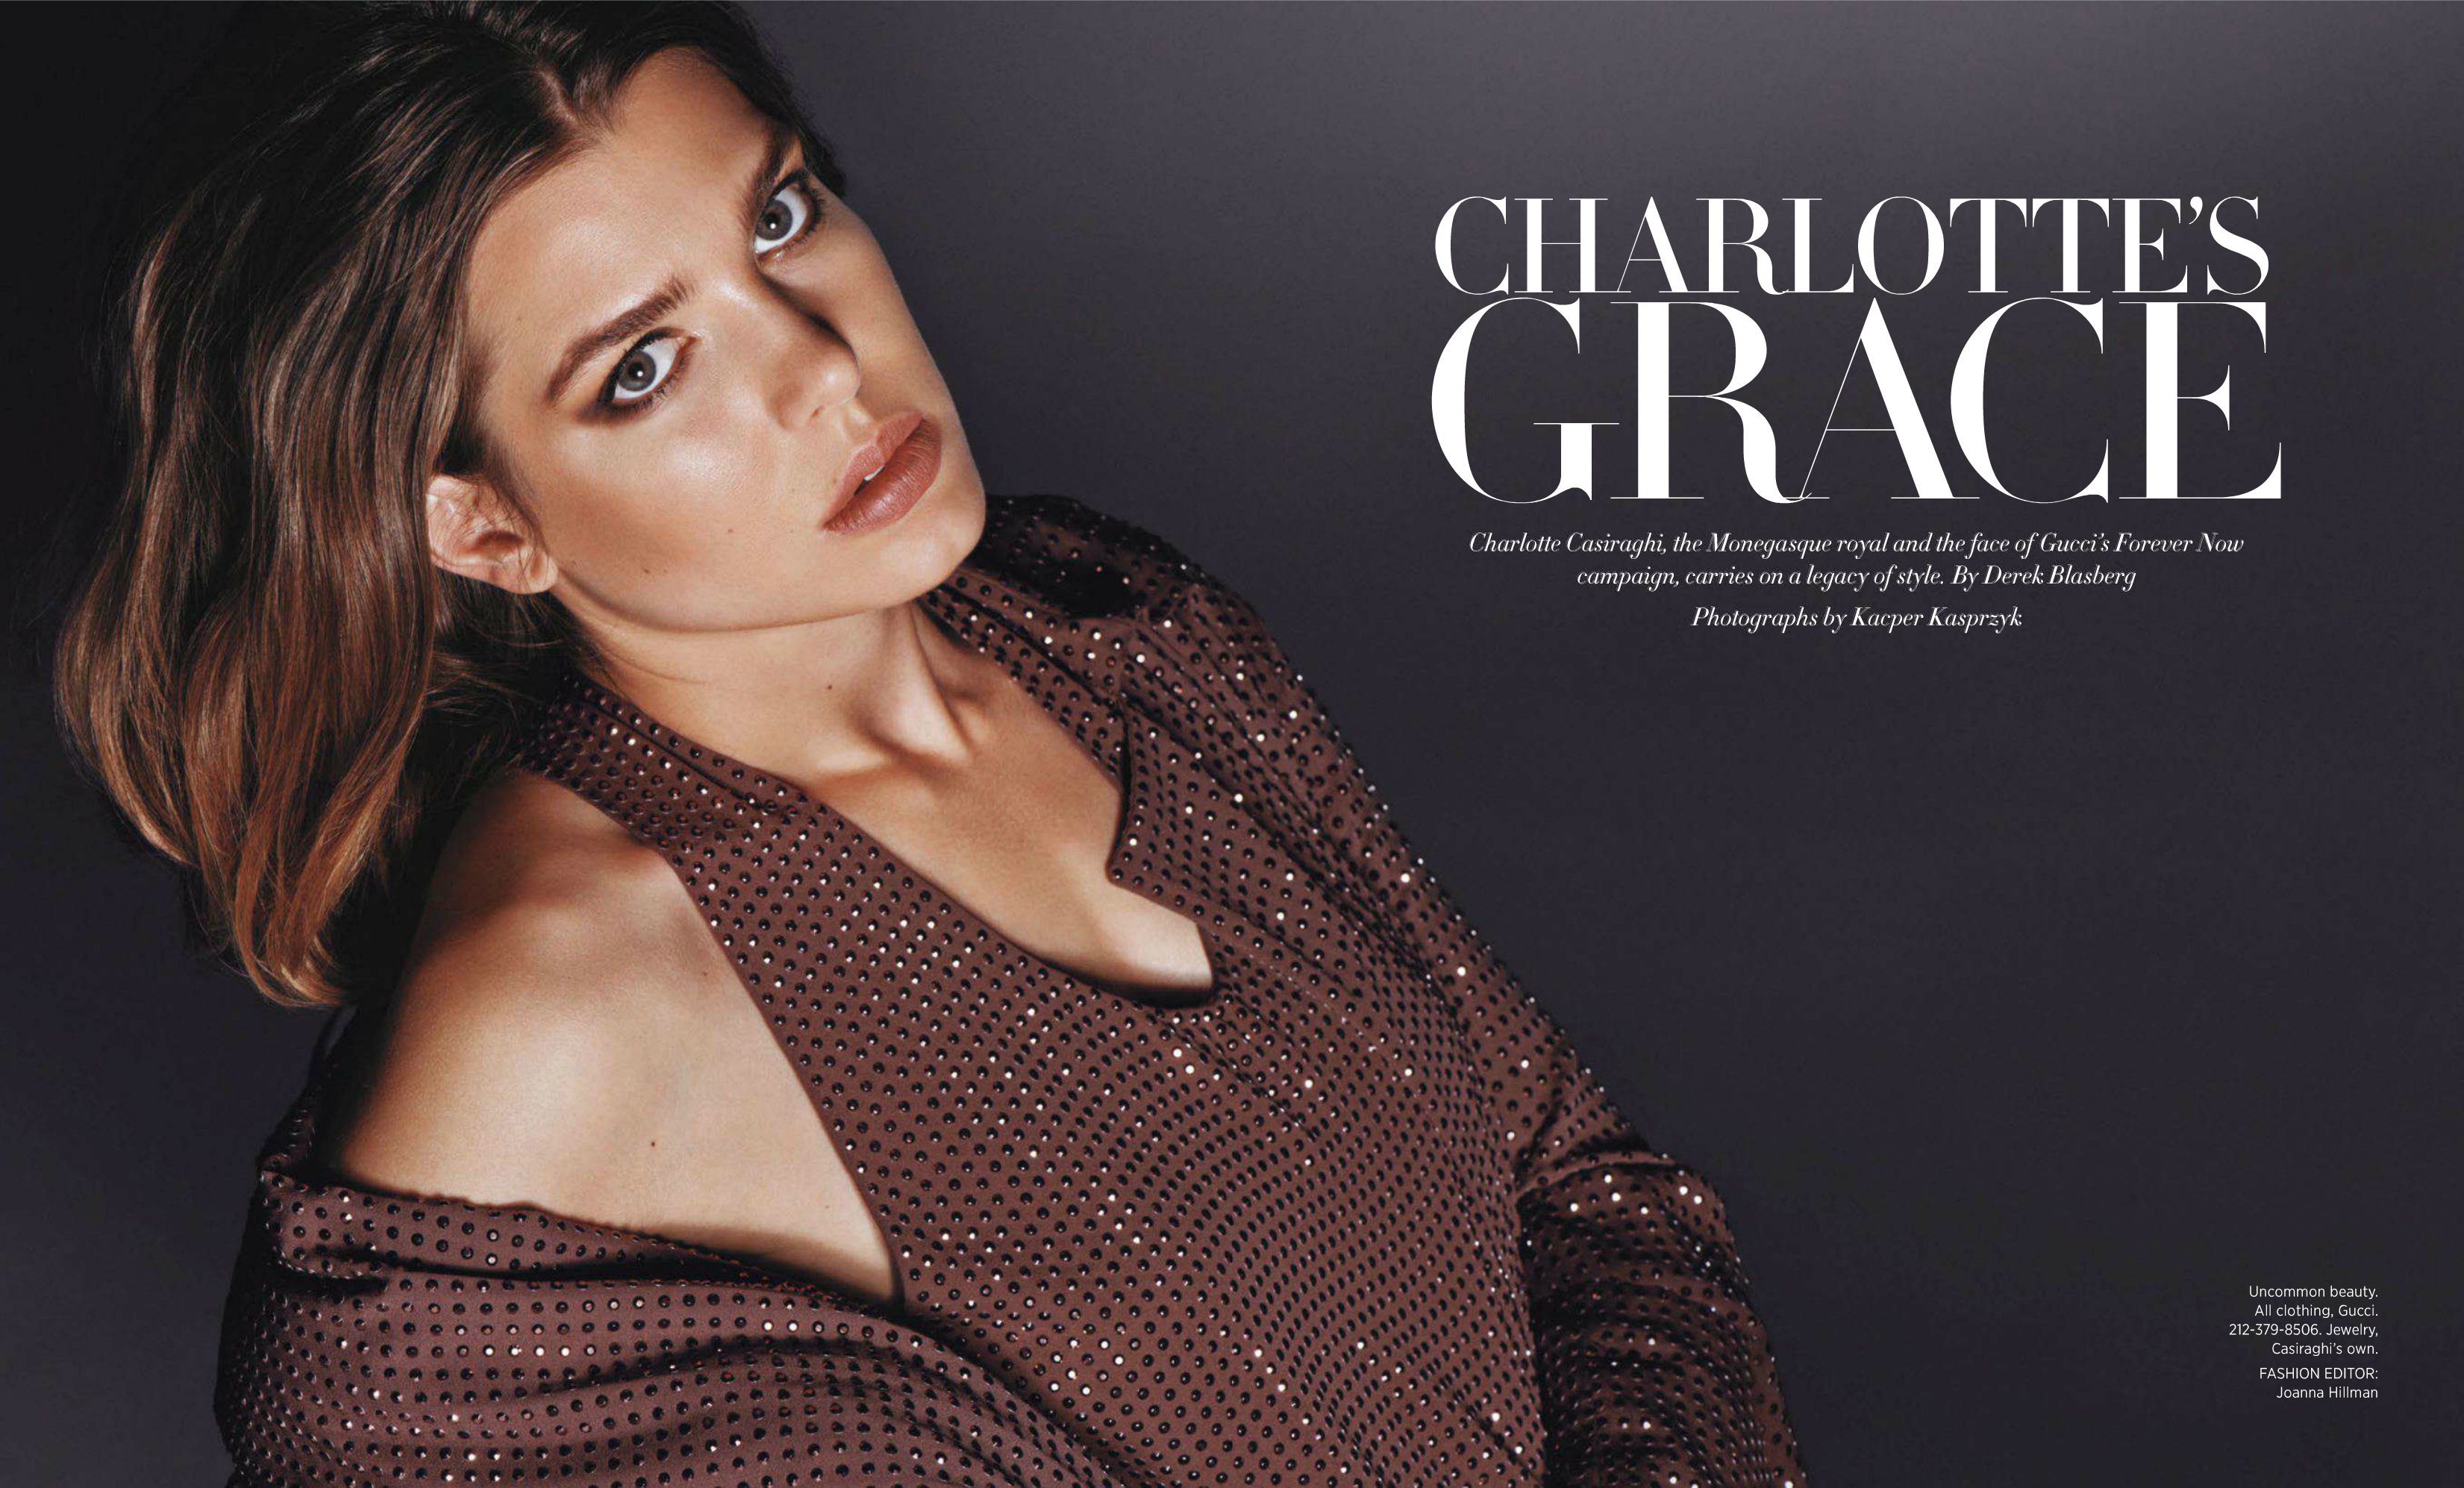 Charlotte Casiraghi by Kacper Kasprzyk for Harper's Bazaar US October 2013 (1)